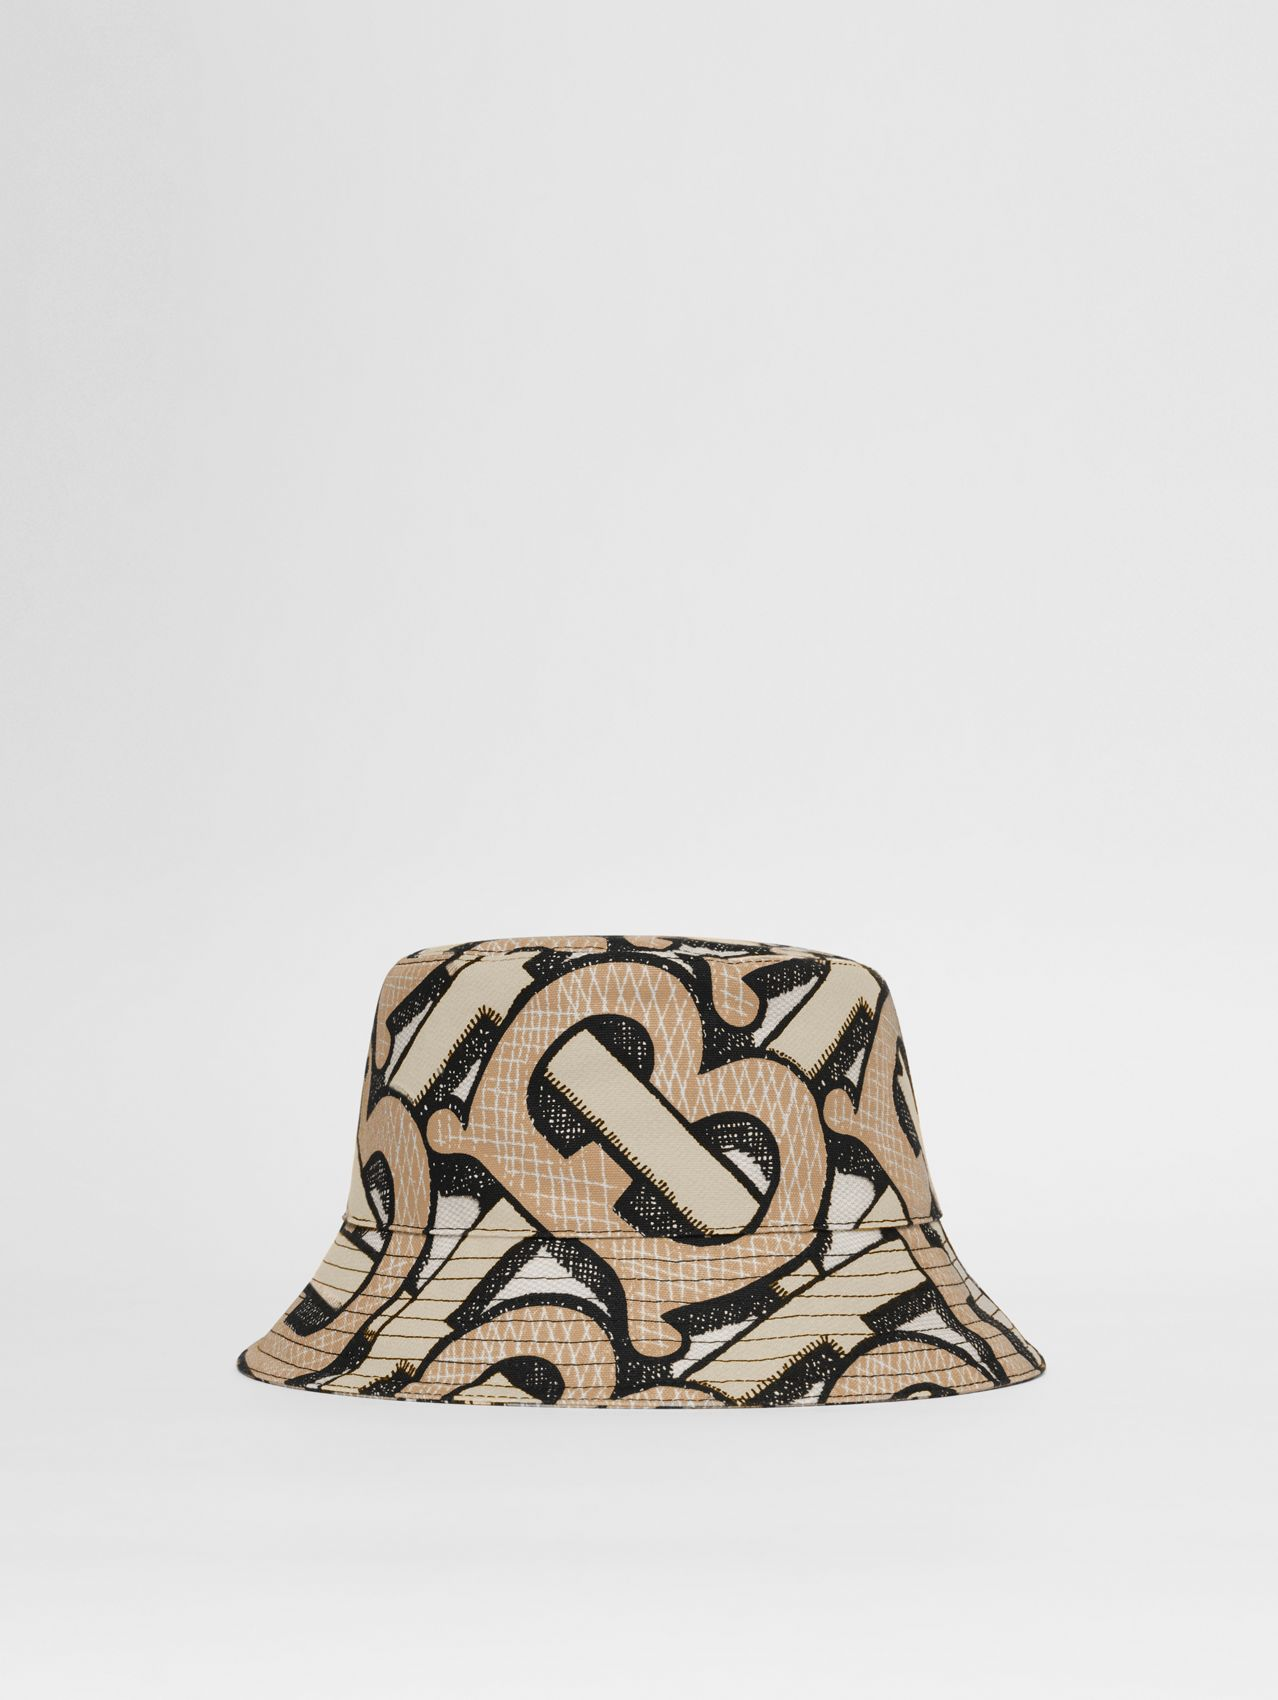 Monogram Print Cotton Canvas Bucket Hat (Dark Beige)